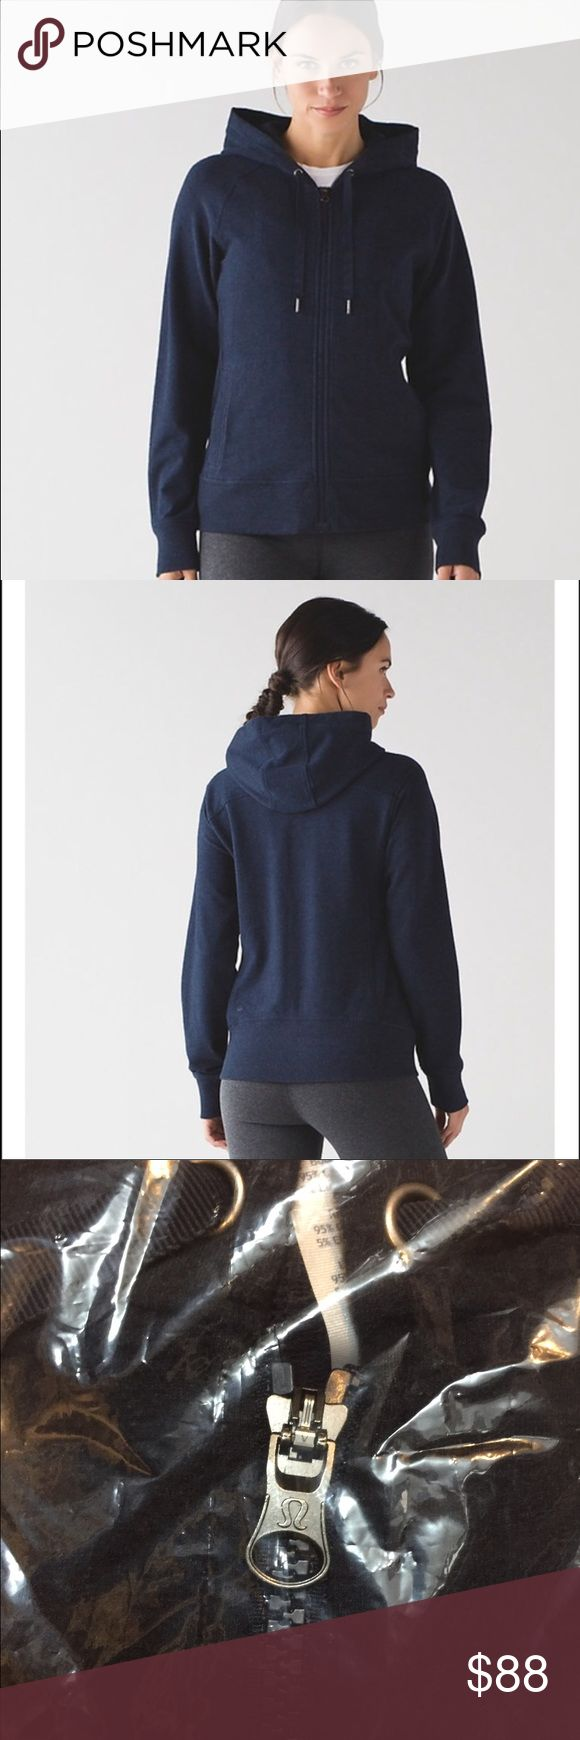 "Lululemon ""split hoodie"" NWT NWT Lululemon ""split hoodie"" in size 6. Color is a shade of heathered Navy. I purchased 3 in different colors and find that I only need 1. Hoodie still in sealed package so stock photos from Lululemon site included for reference. *hoodie is thinner than scuba version. **cross listed on M lululemon athletica Tops Sweatshirts & Hoodies"